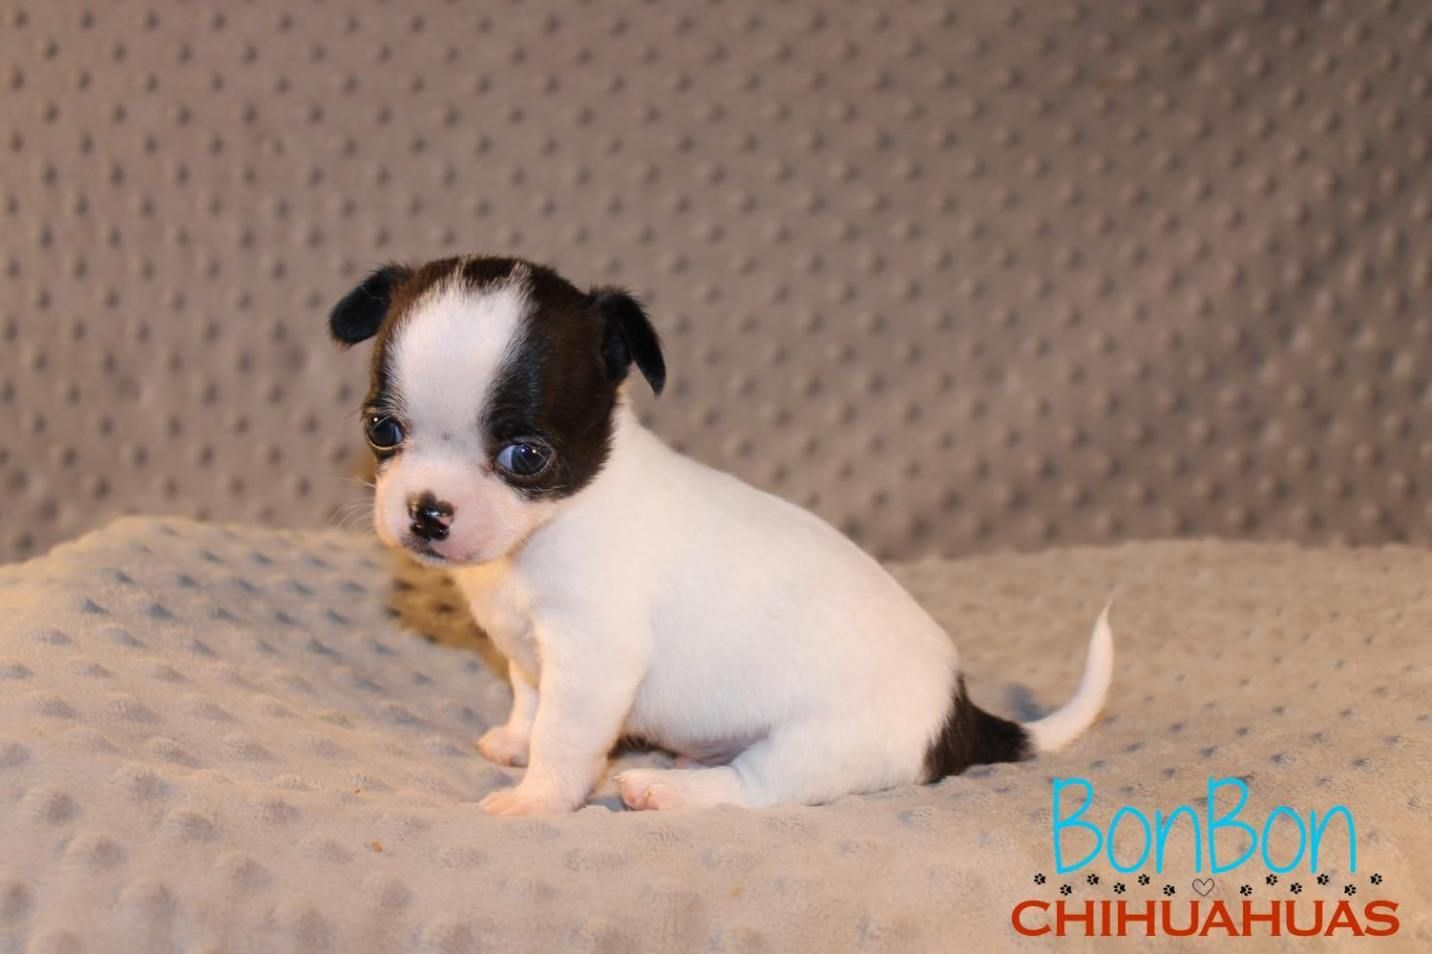 Chihuahua Puppies For Sale Chihuahua Puppies For Sale Chihuahua Chihuahua Puppies